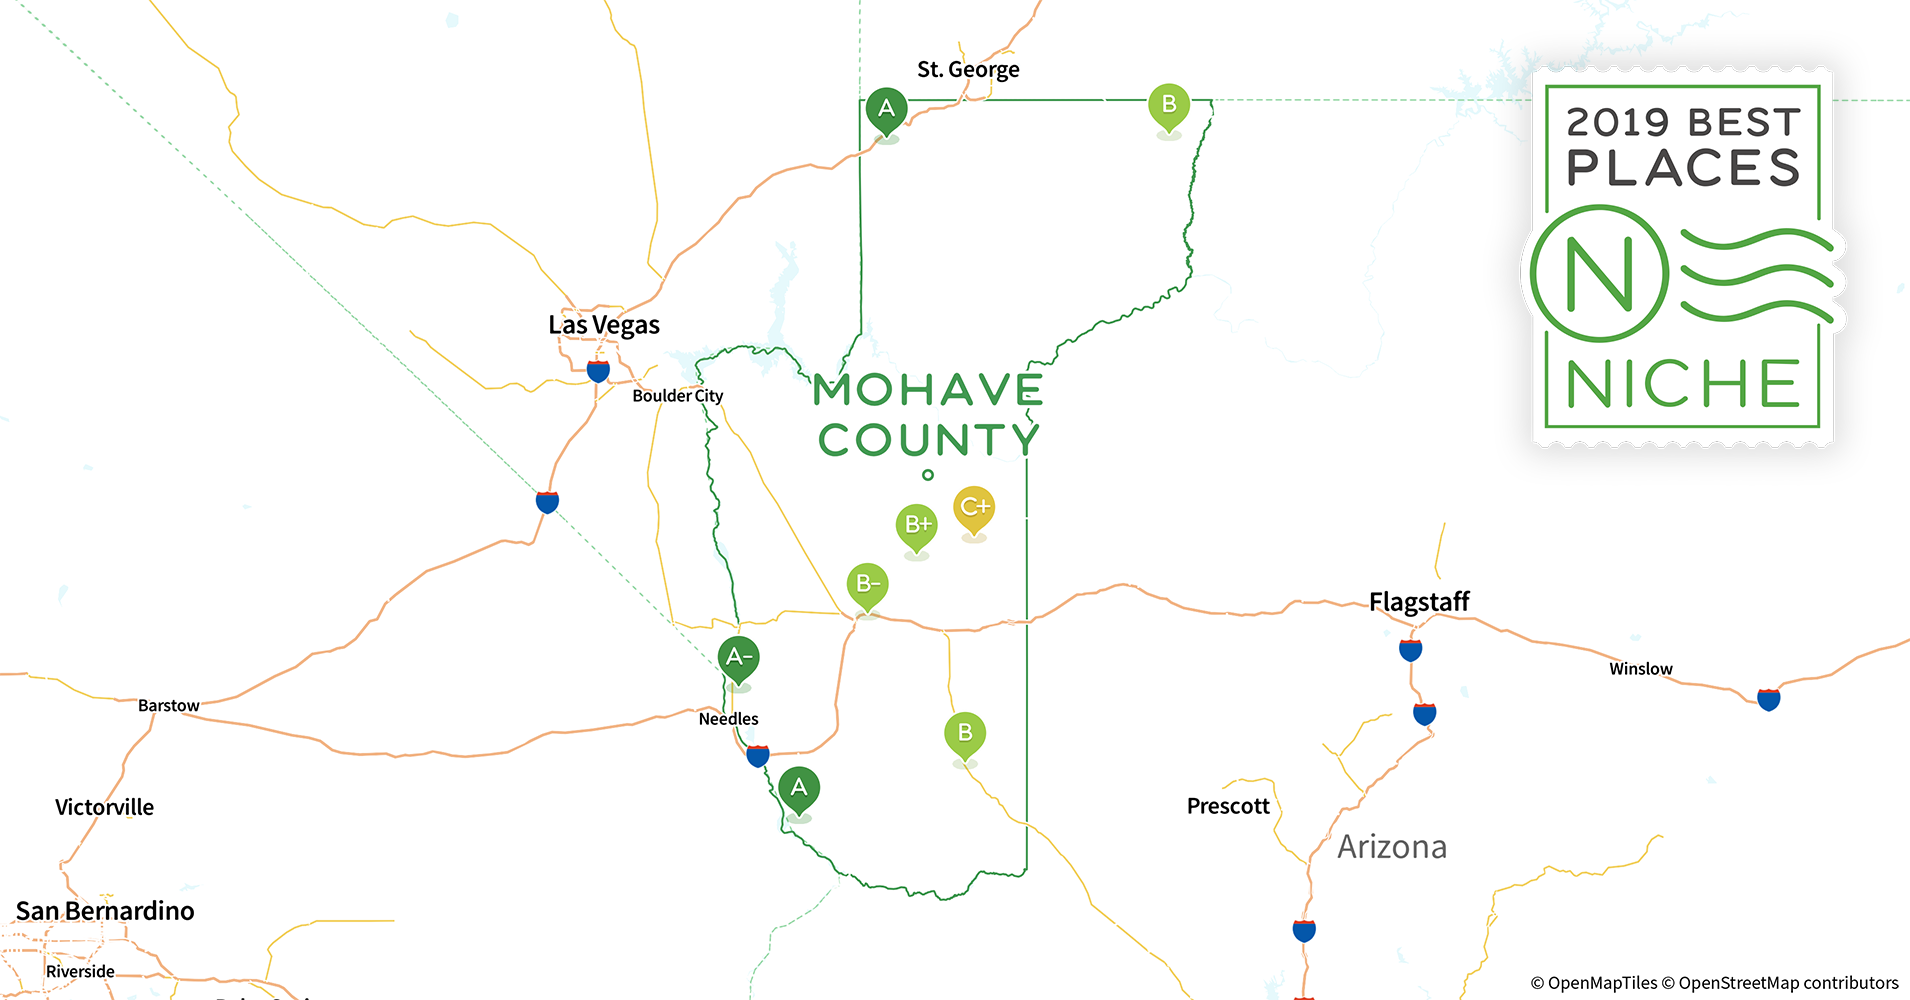 2019 Best Places to Live in Mohave County, AZ - Niche